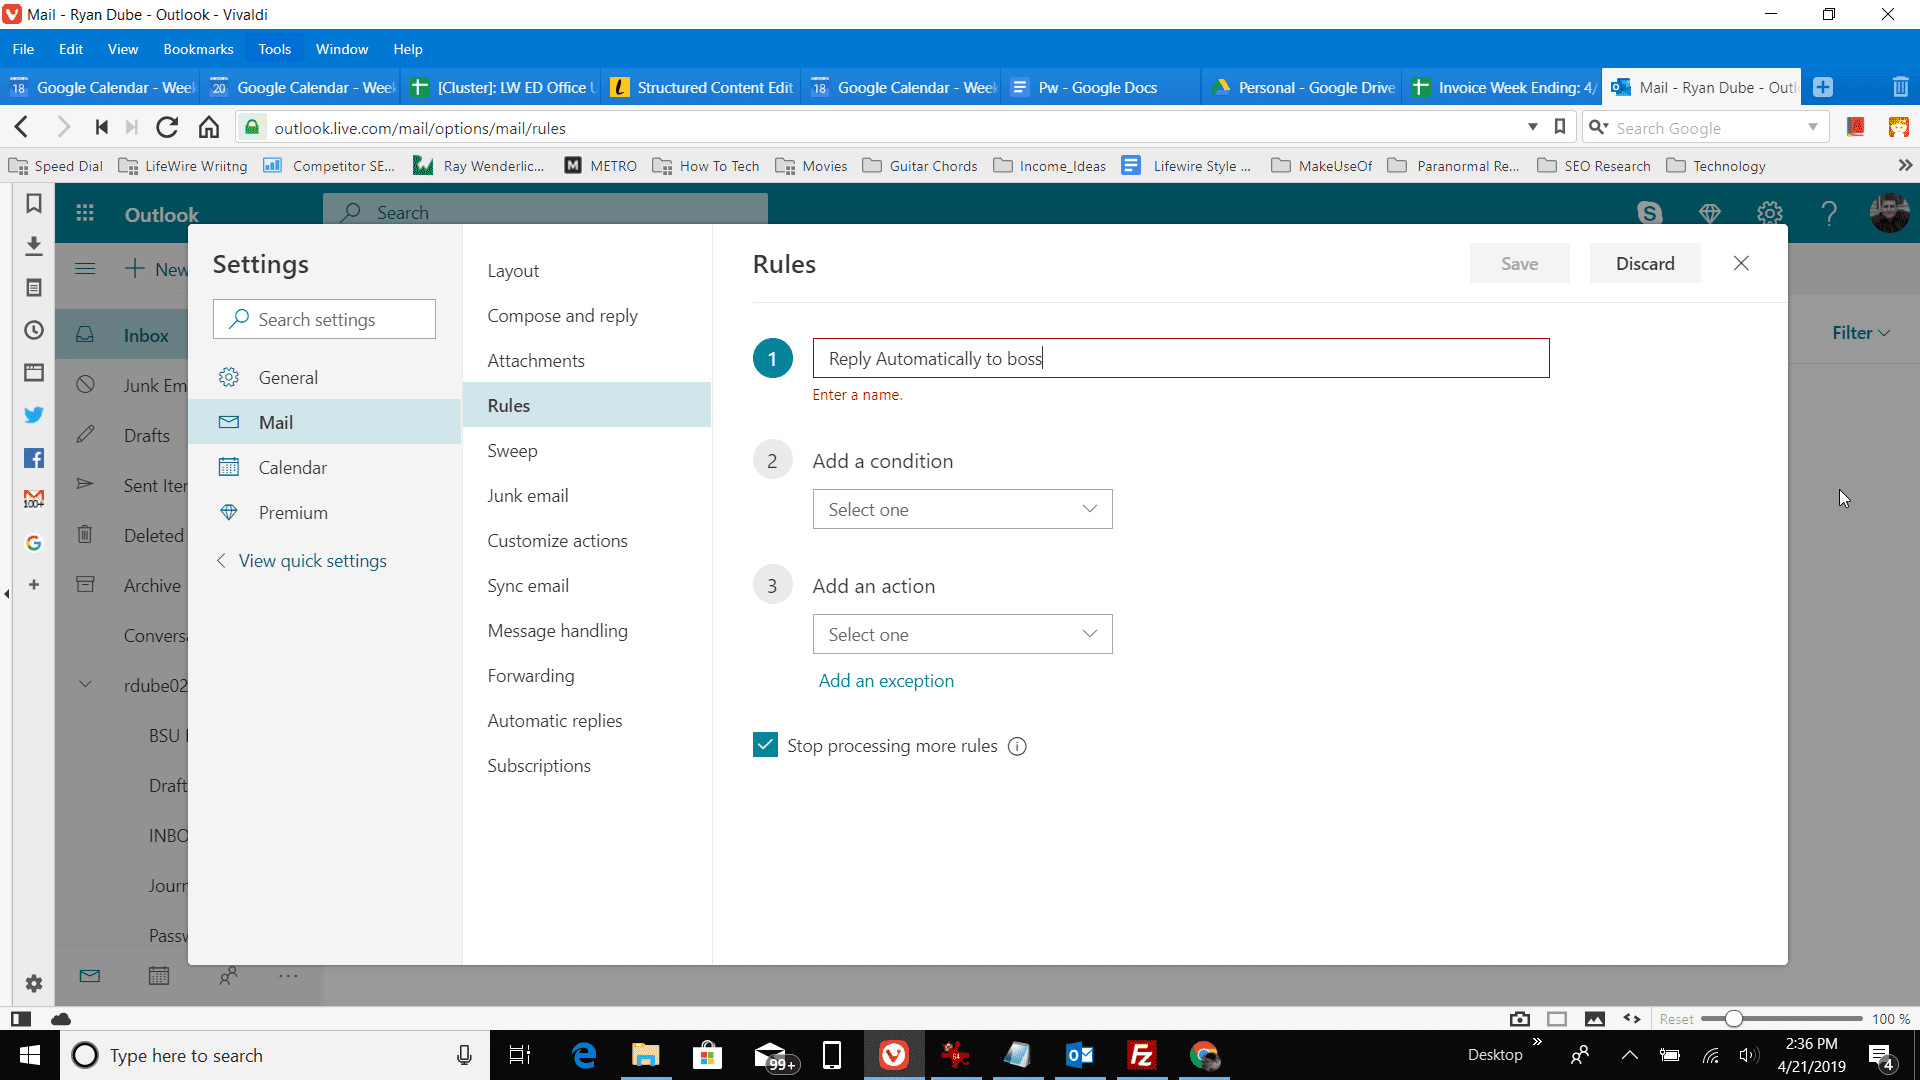 Screenshot of naming a rule in the Rules window